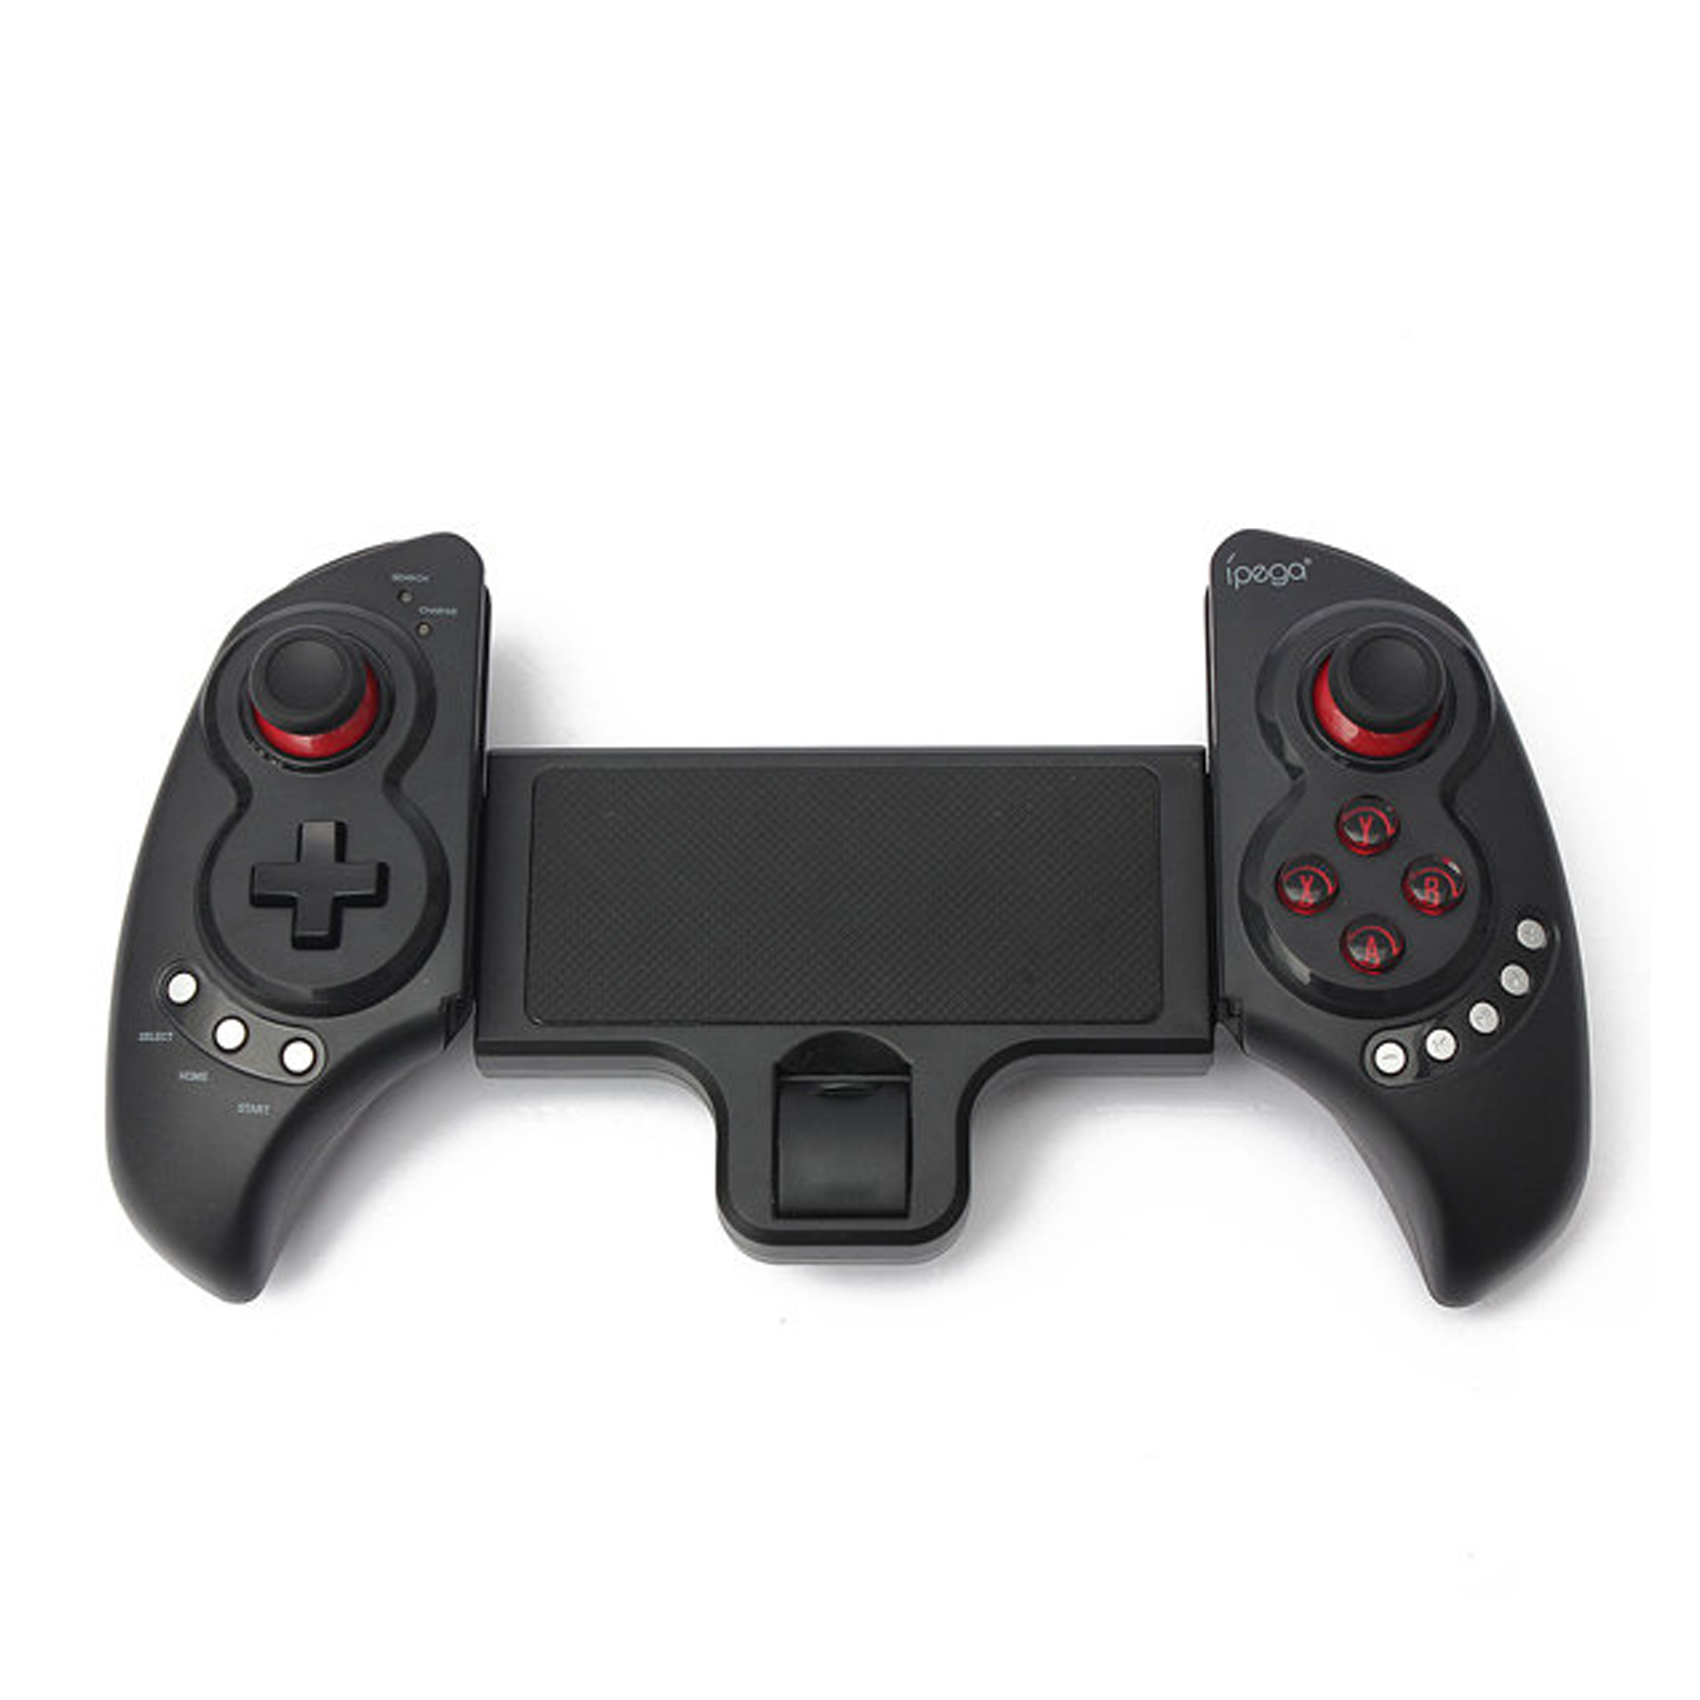 Ipega Bluetooth Classic Game Pad 9023 - Black